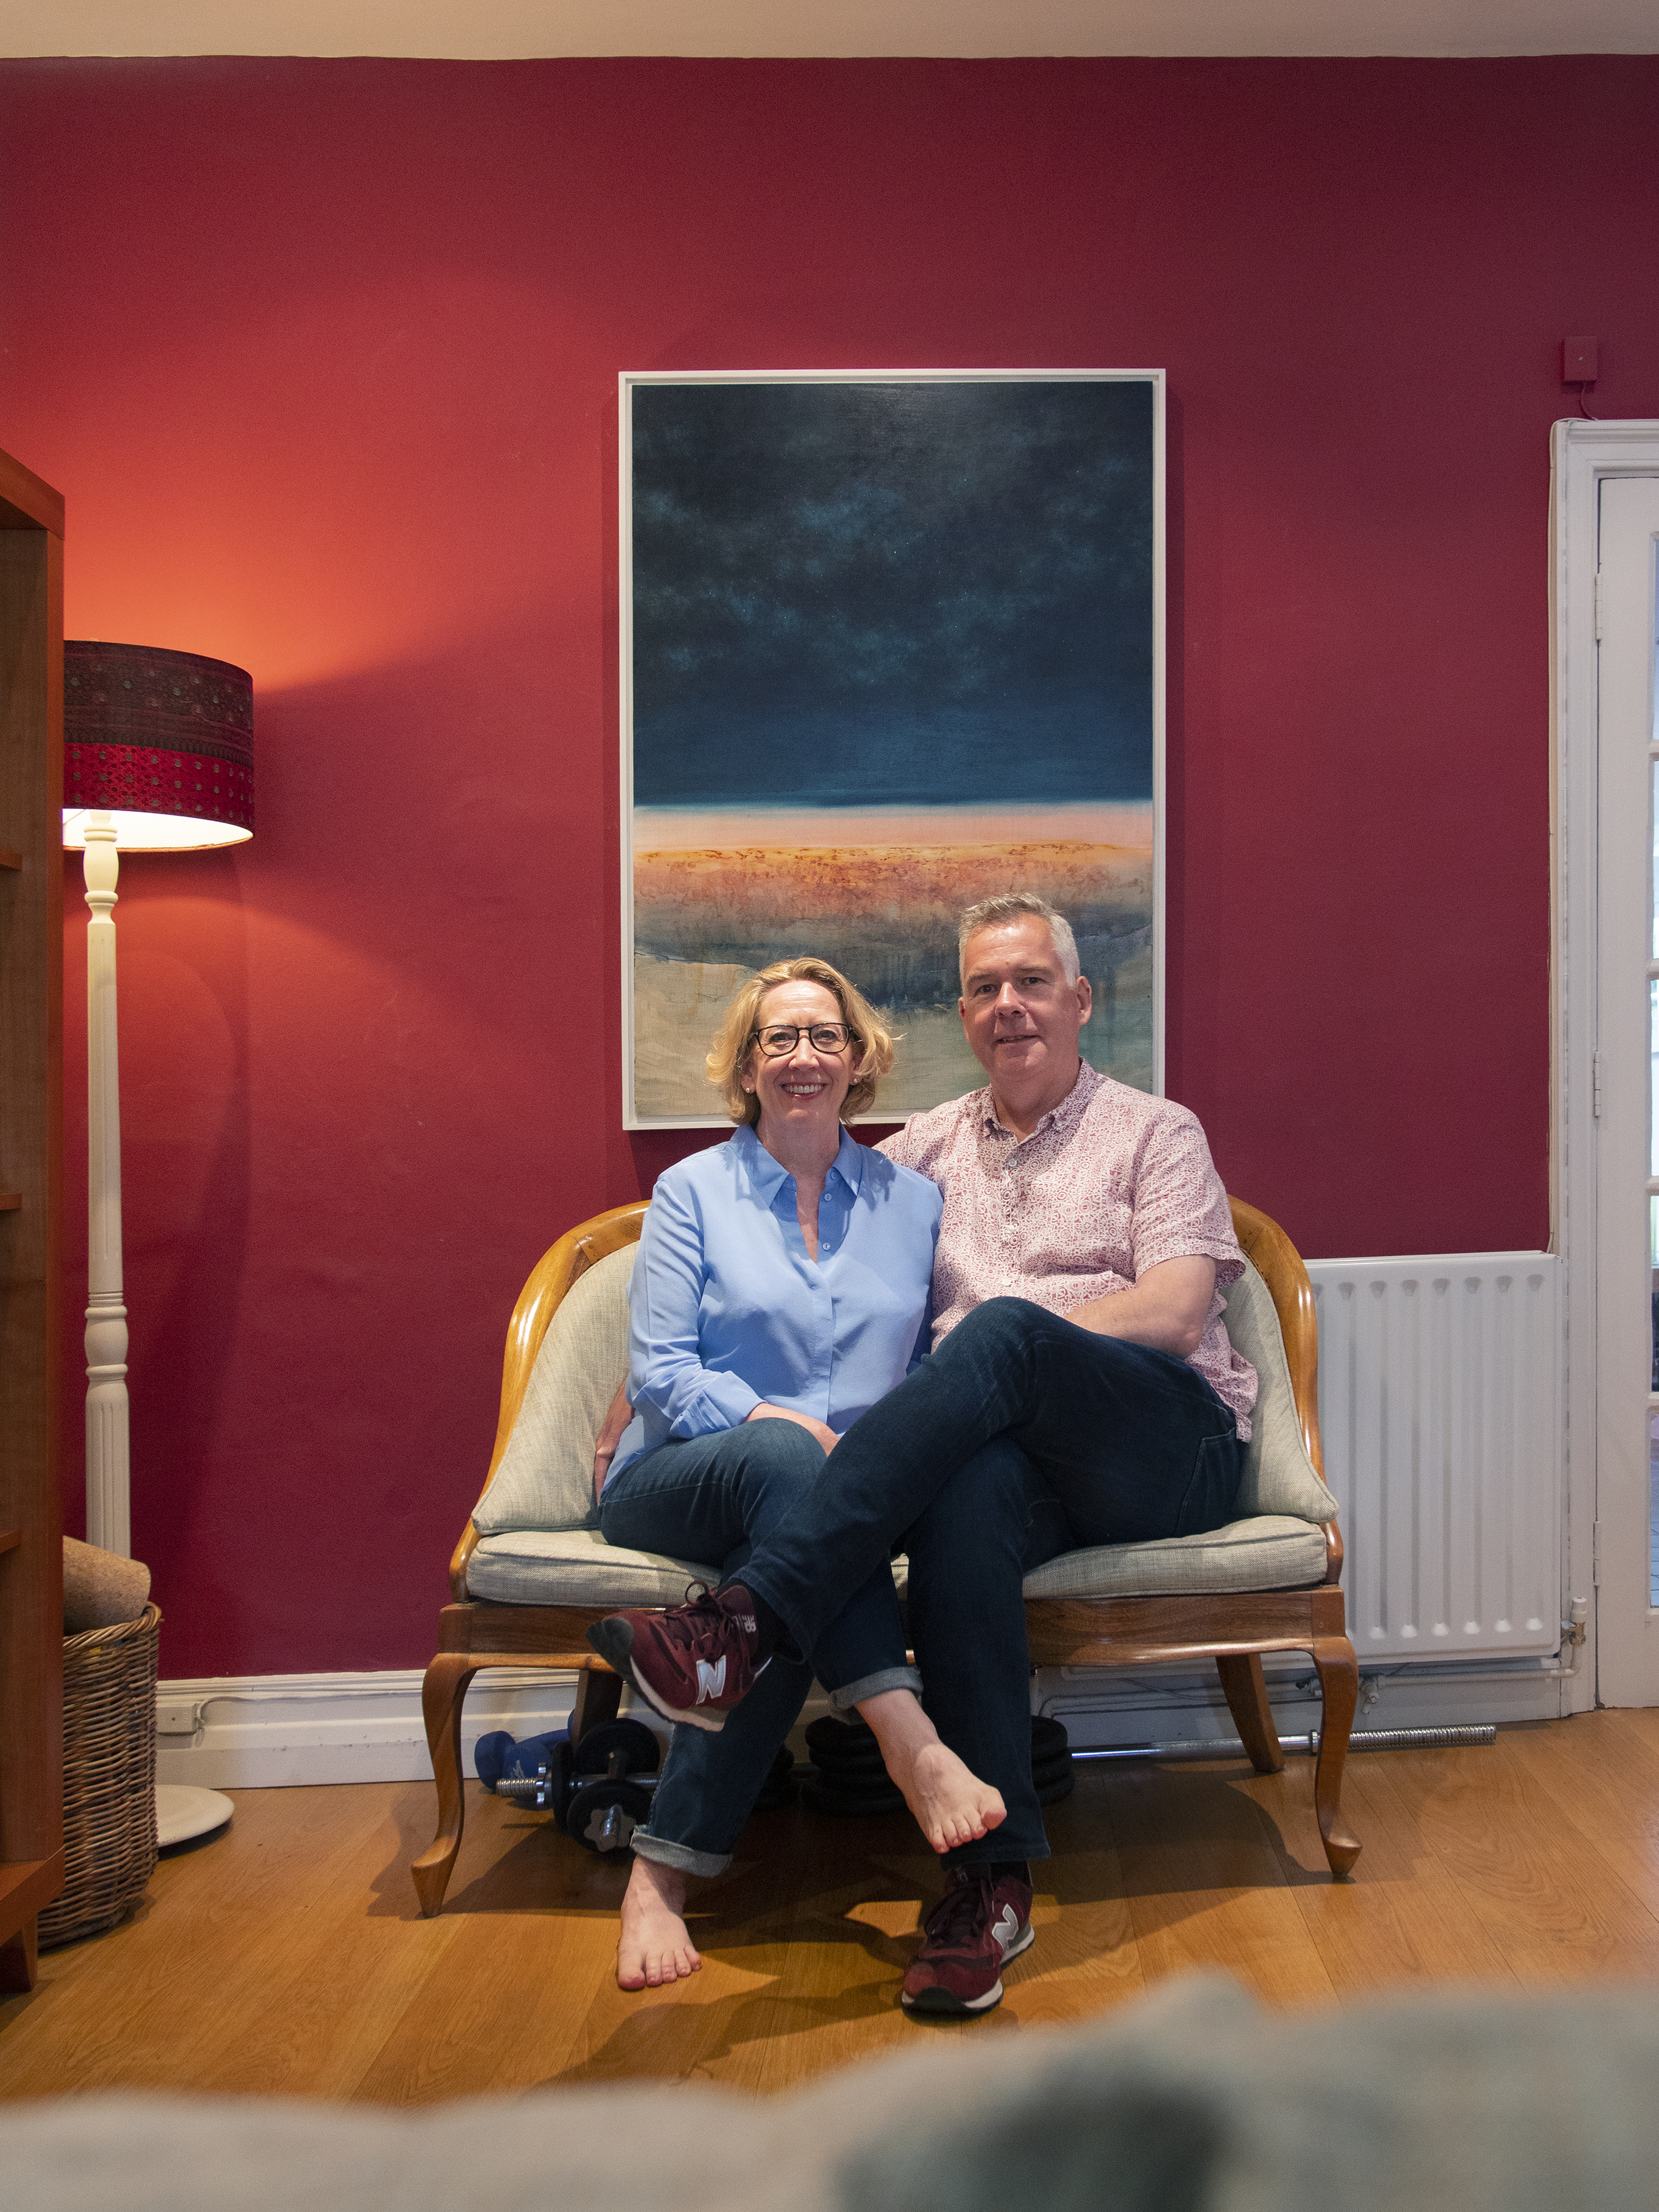 Joanna and her husband infront of their Daniel Ablitt painting, Will's Art Warehouse. Purchased Spring, 2018